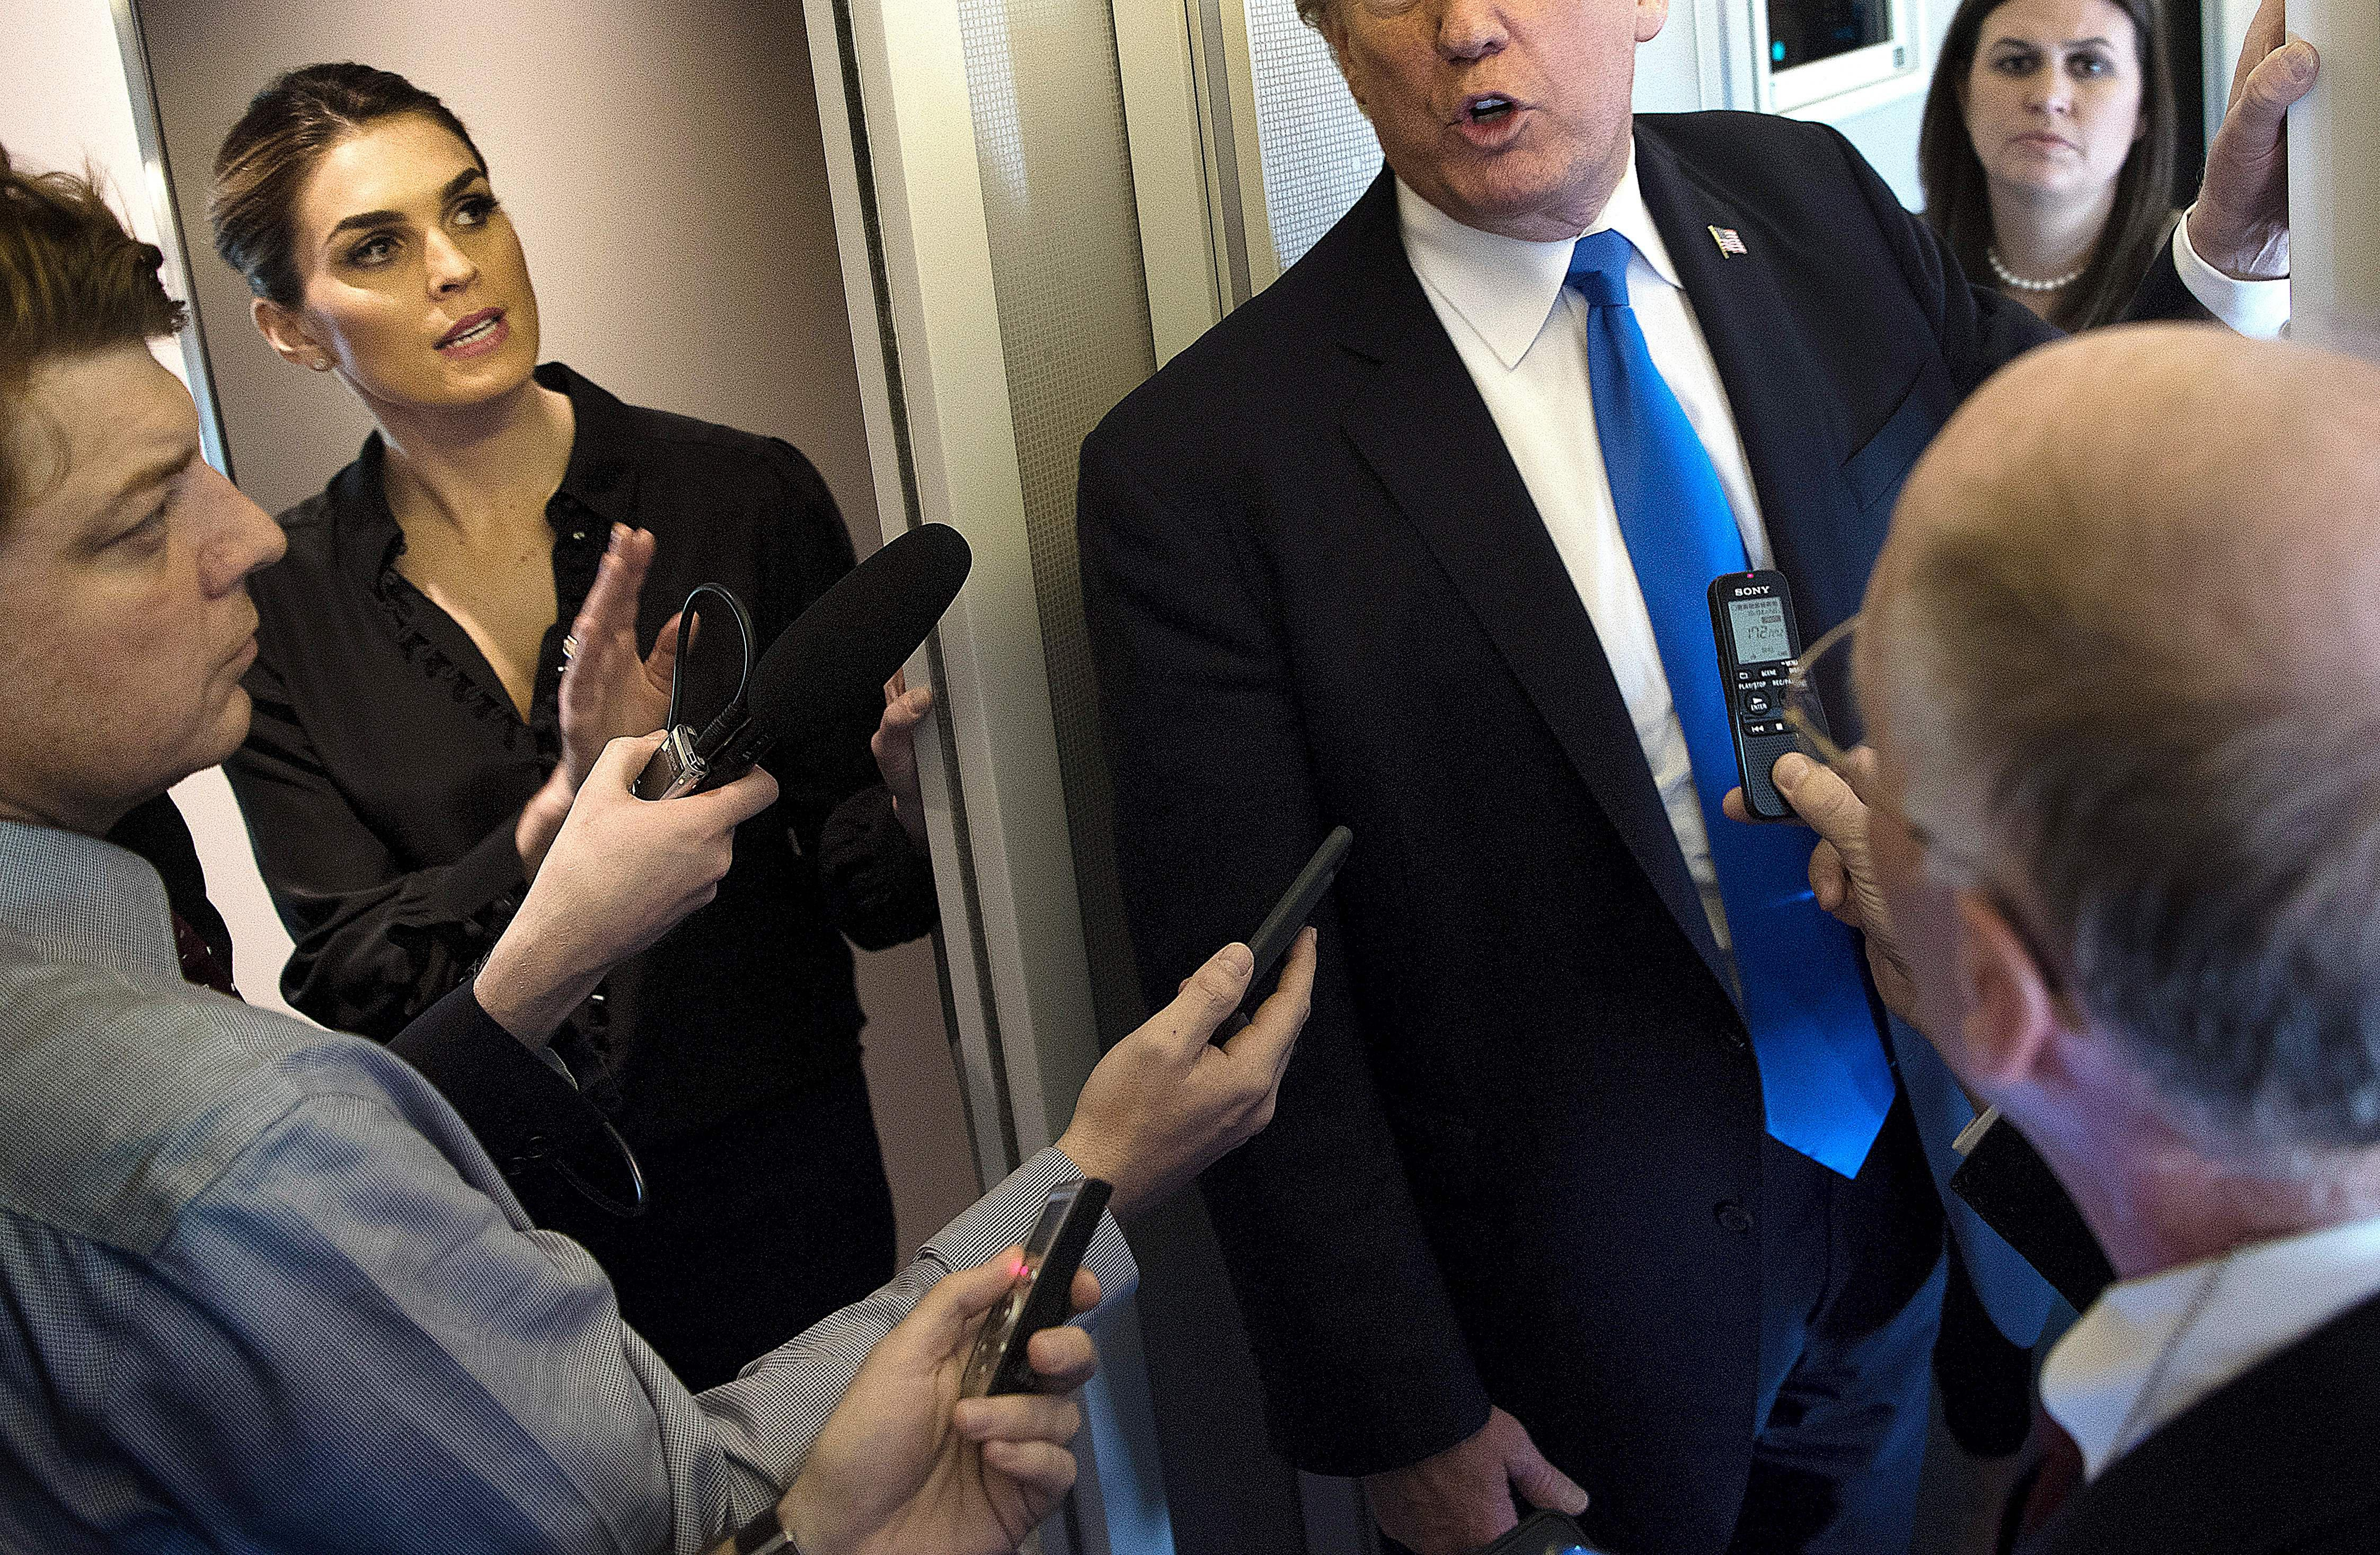 White House Communications Director Hope Hicks and President Trump speak to reporters aboard Air Force One while departing Manila on Nov. 14, 2017.